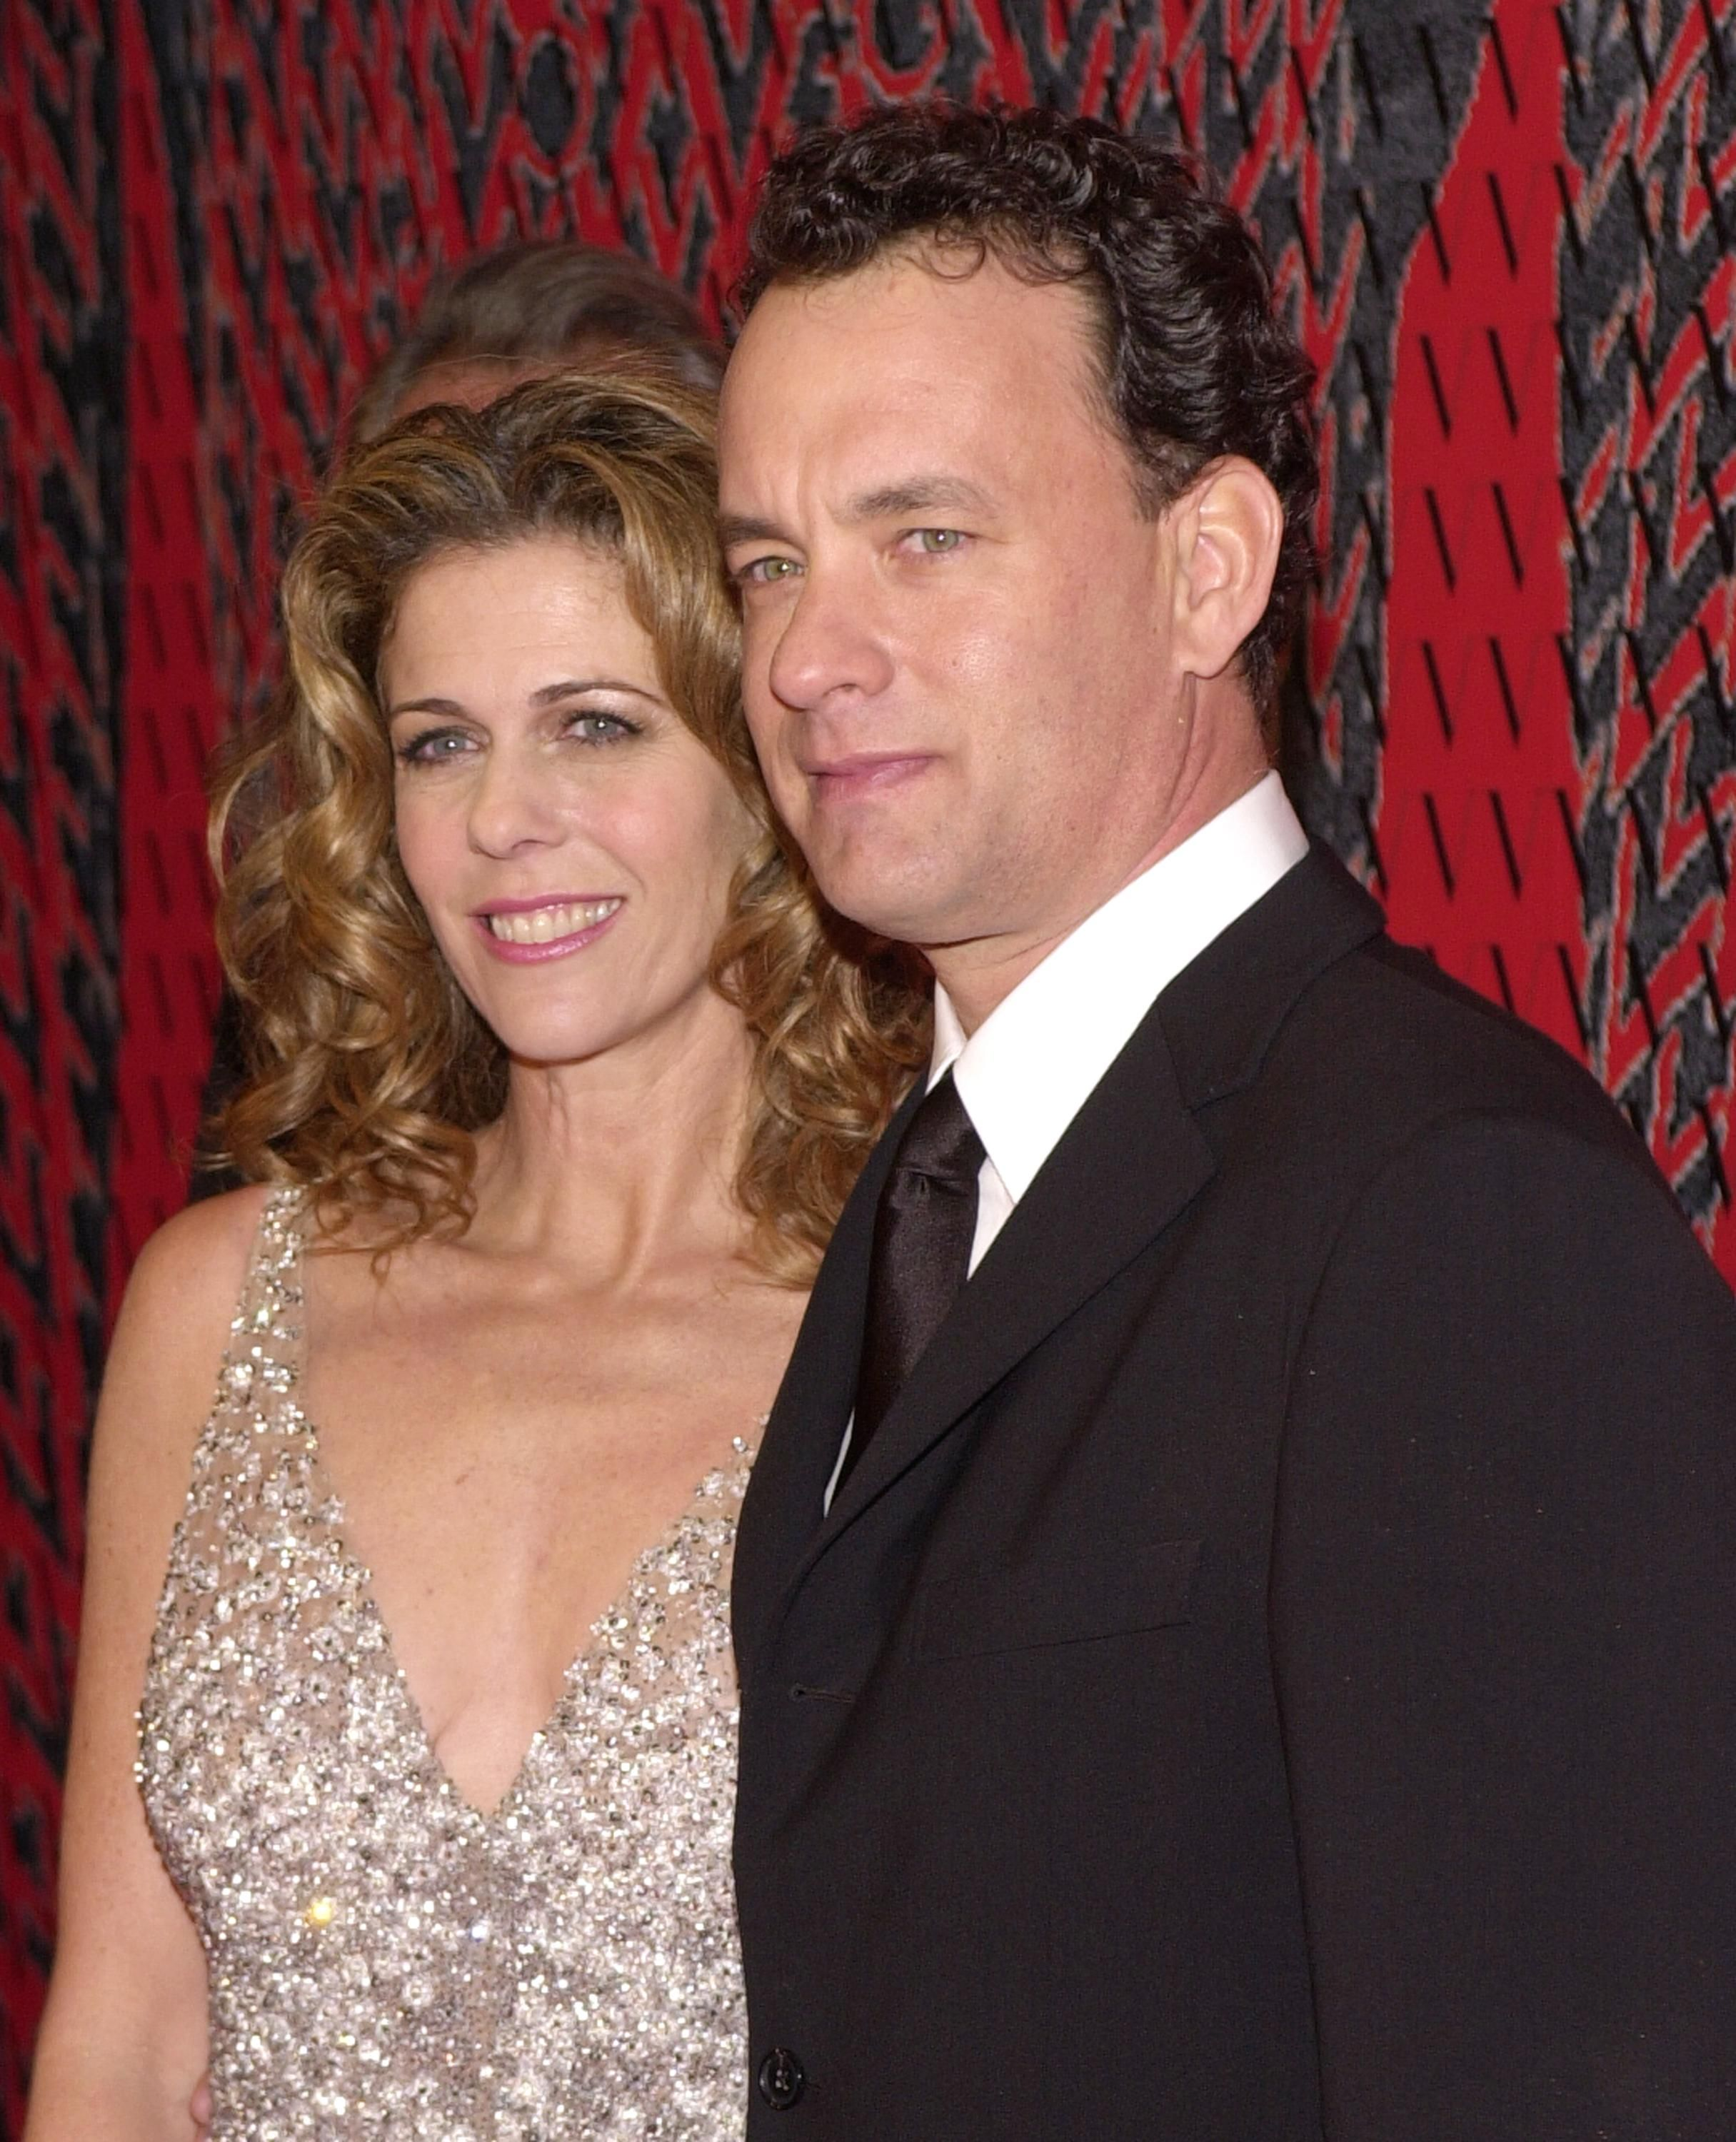 Tom Hanks and wife Rita Wilson arrive at Valentino's 40th Anniversary Los Angeles event November 17, 2000 | Source: Getty Images